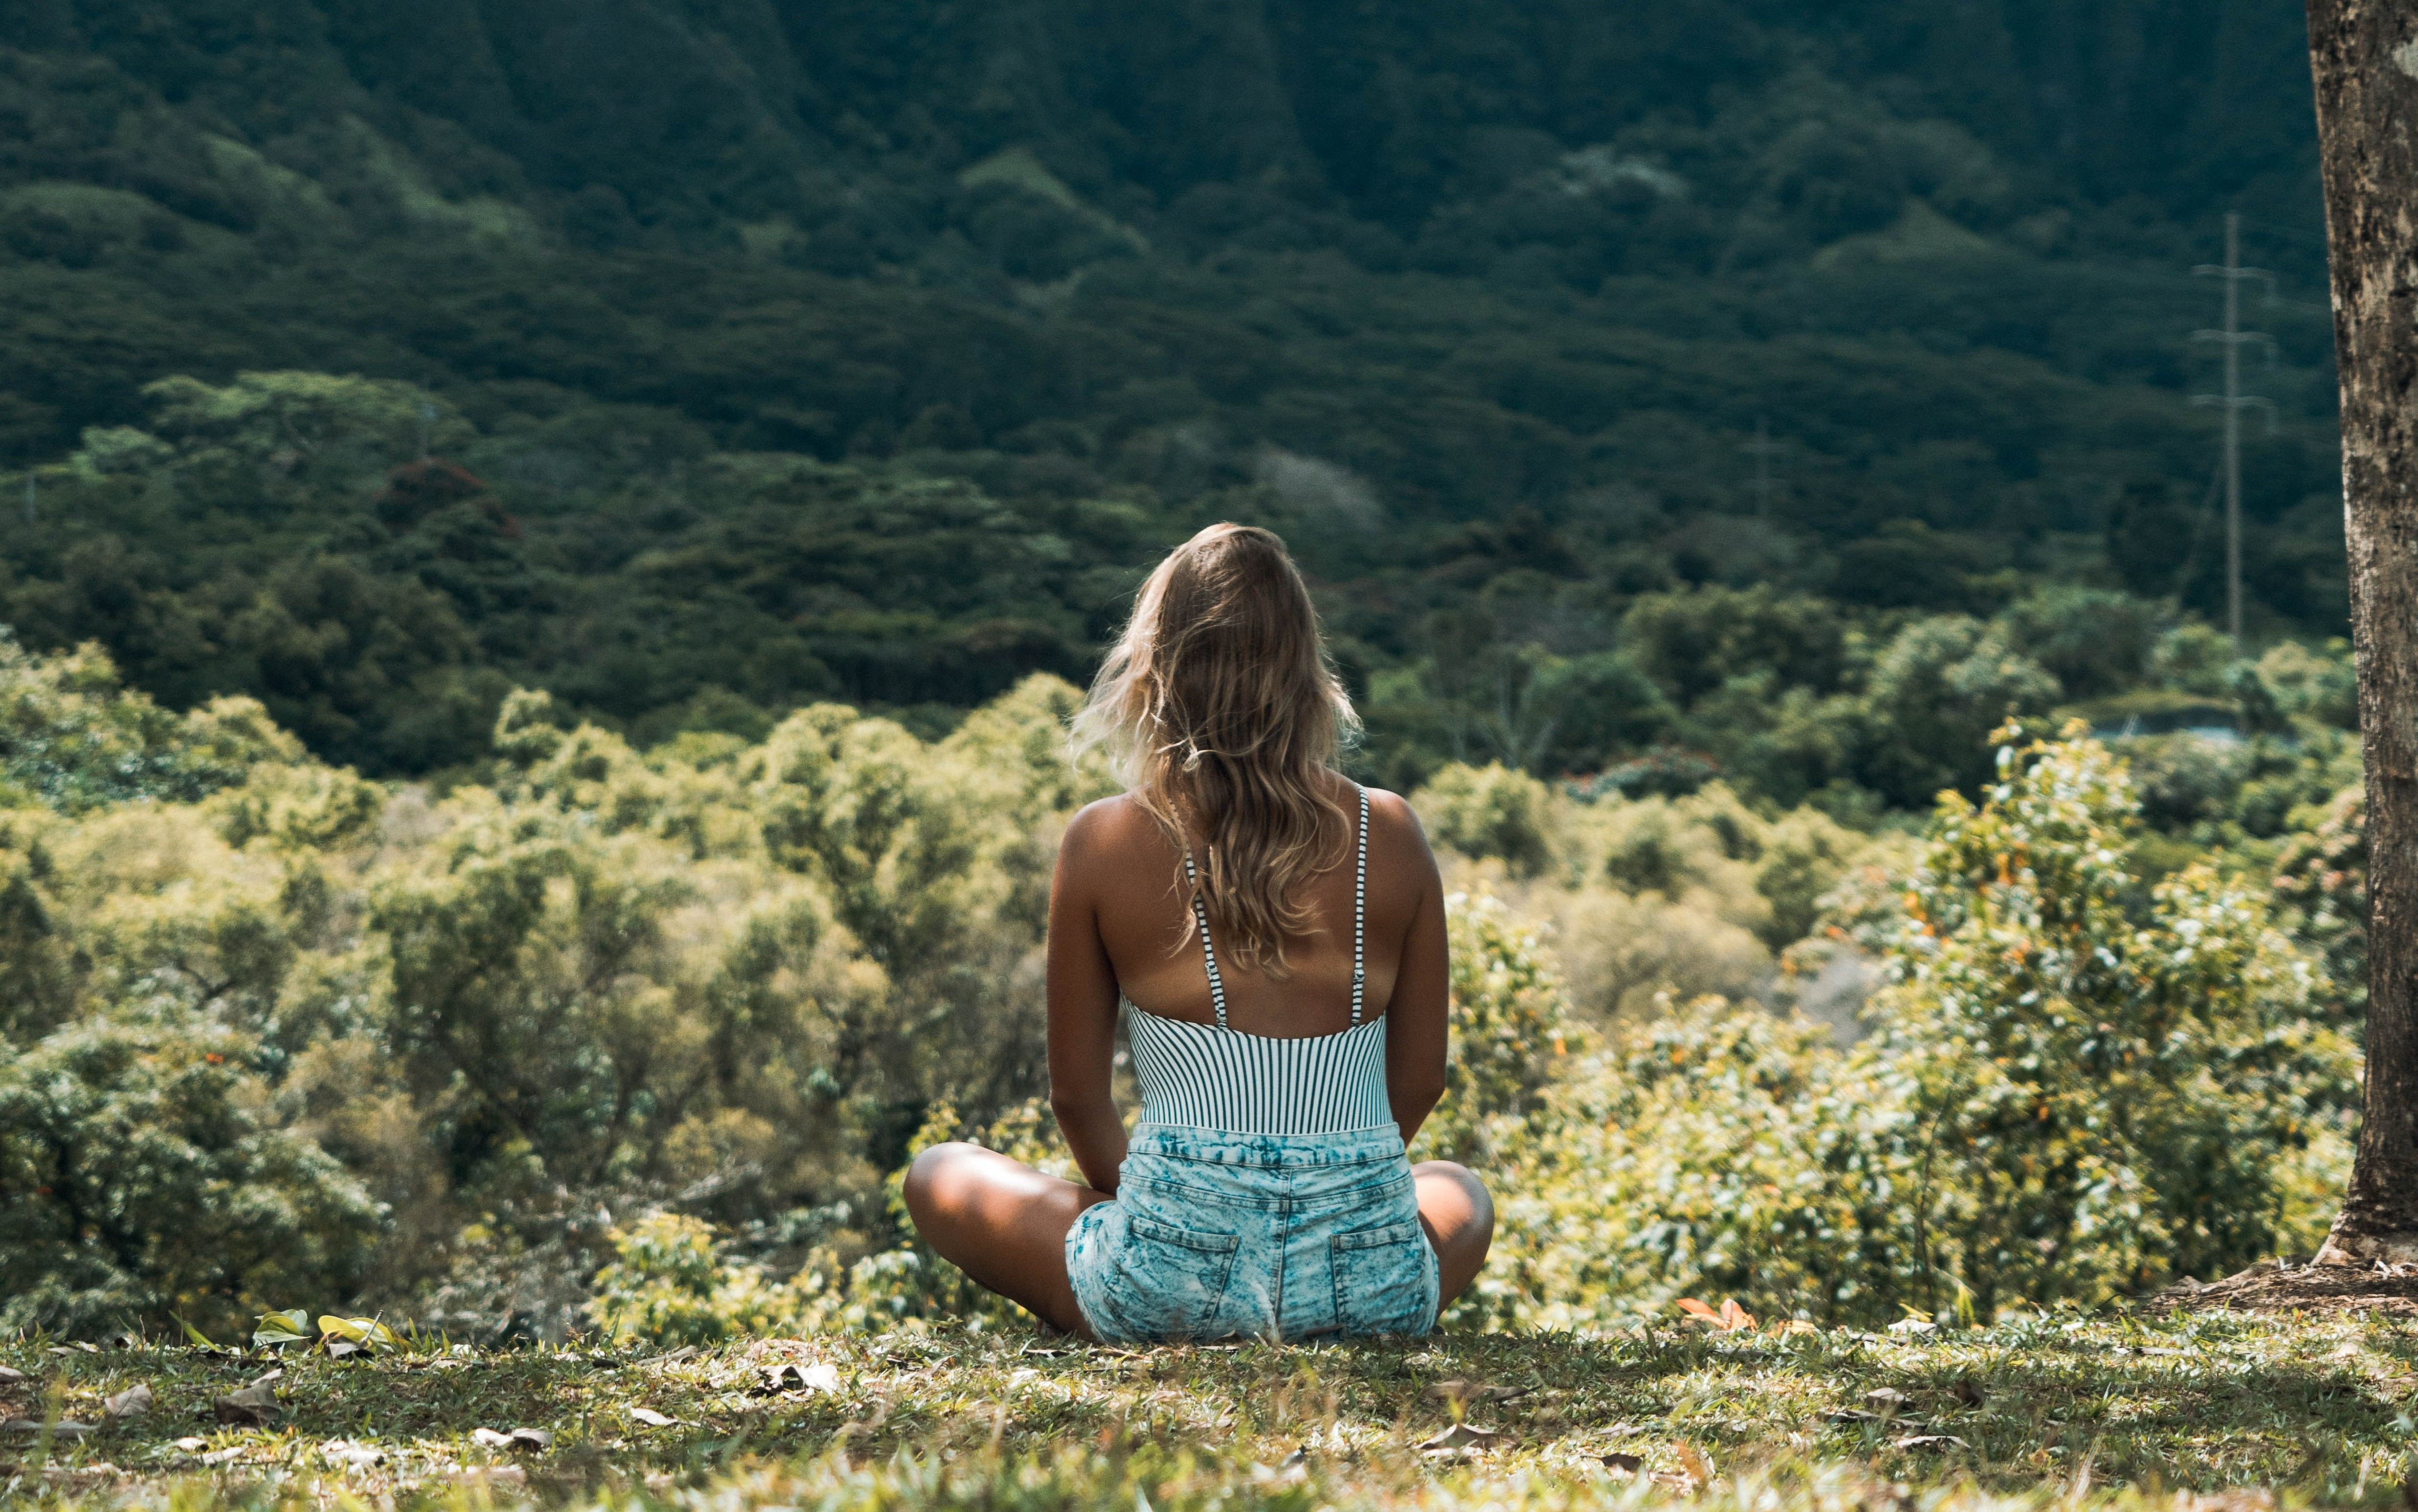 Mindfulness dating tips